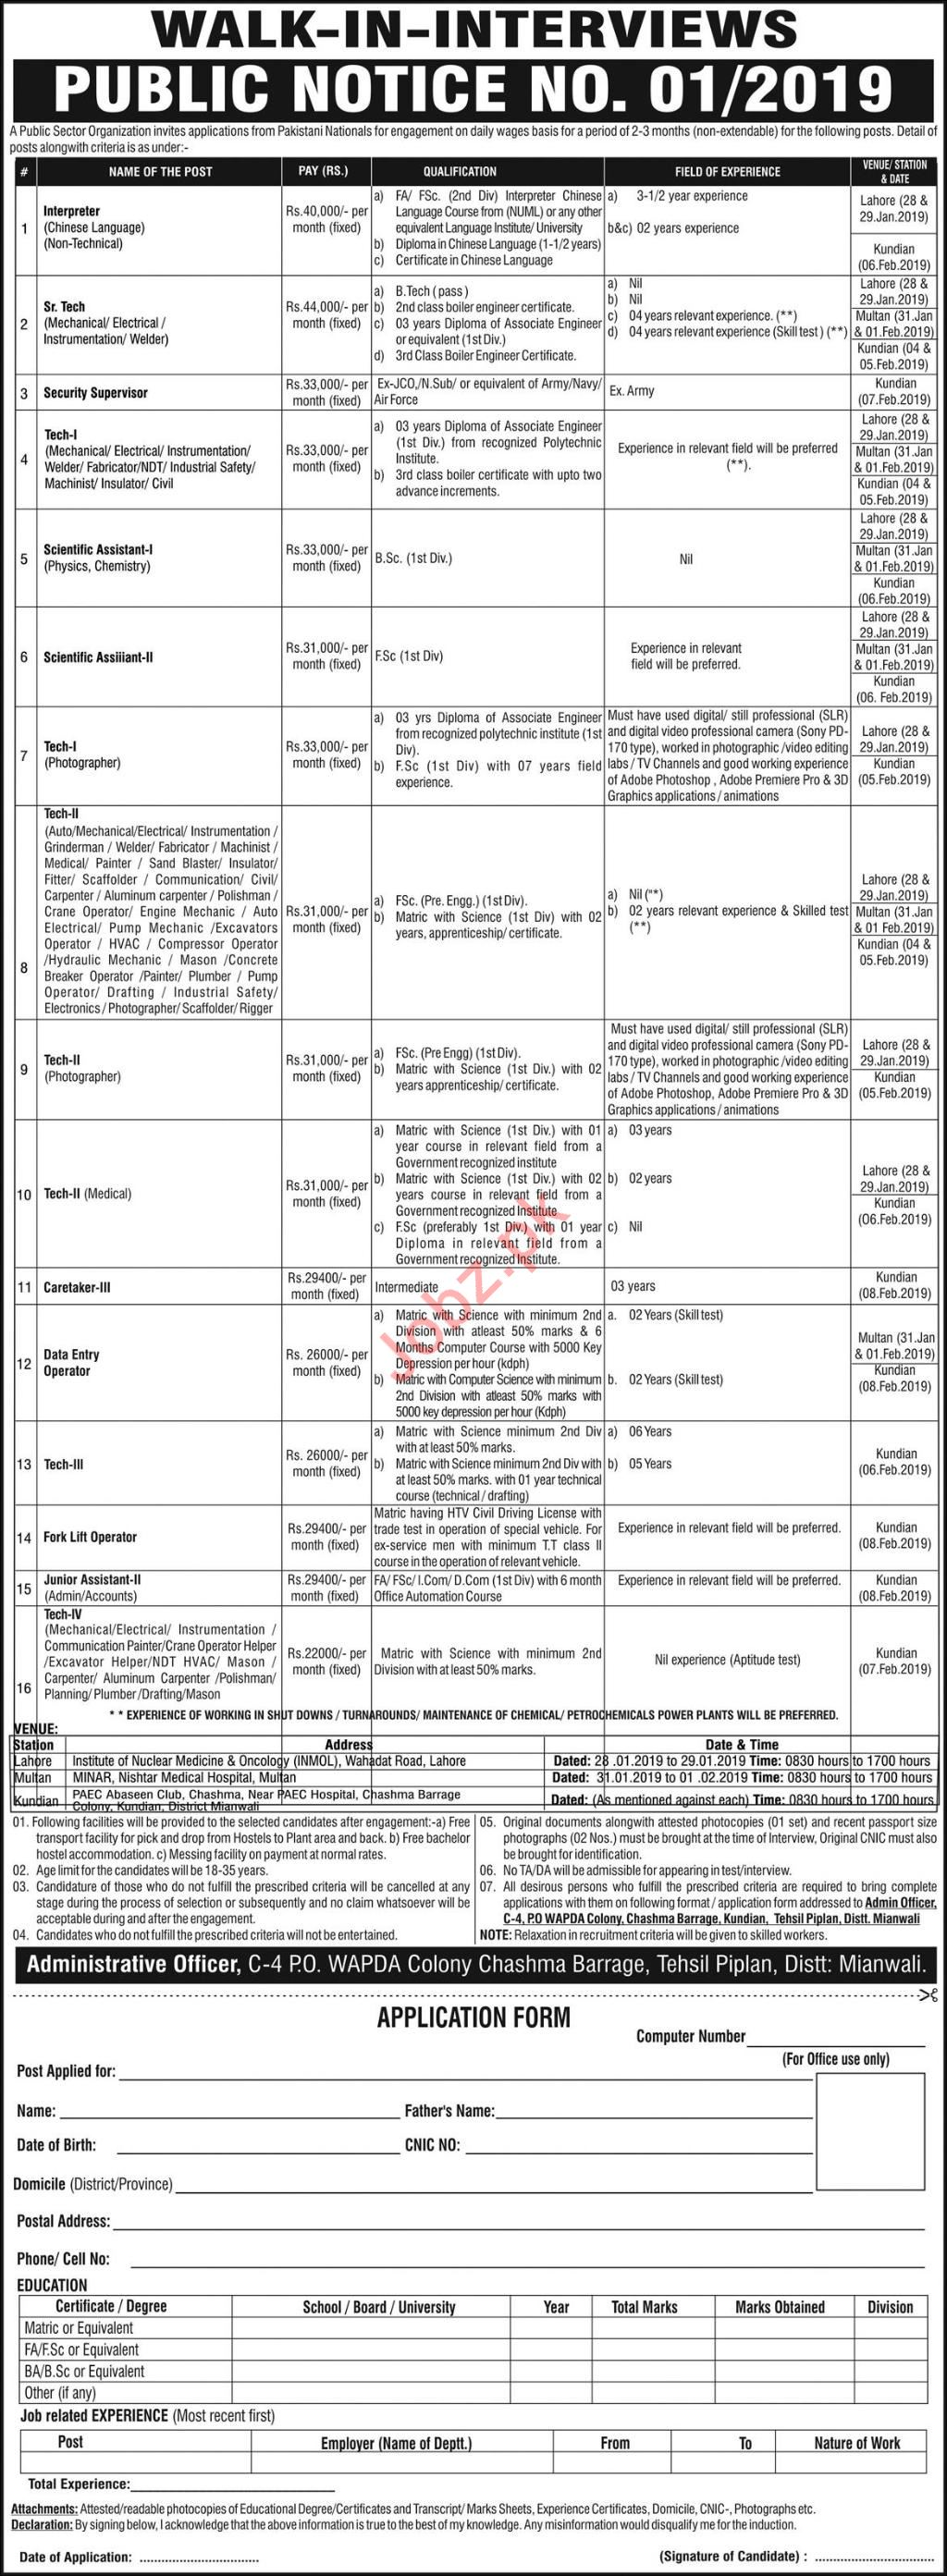 Pakistan Atomic Energy Commission Walk In Interviews 2019